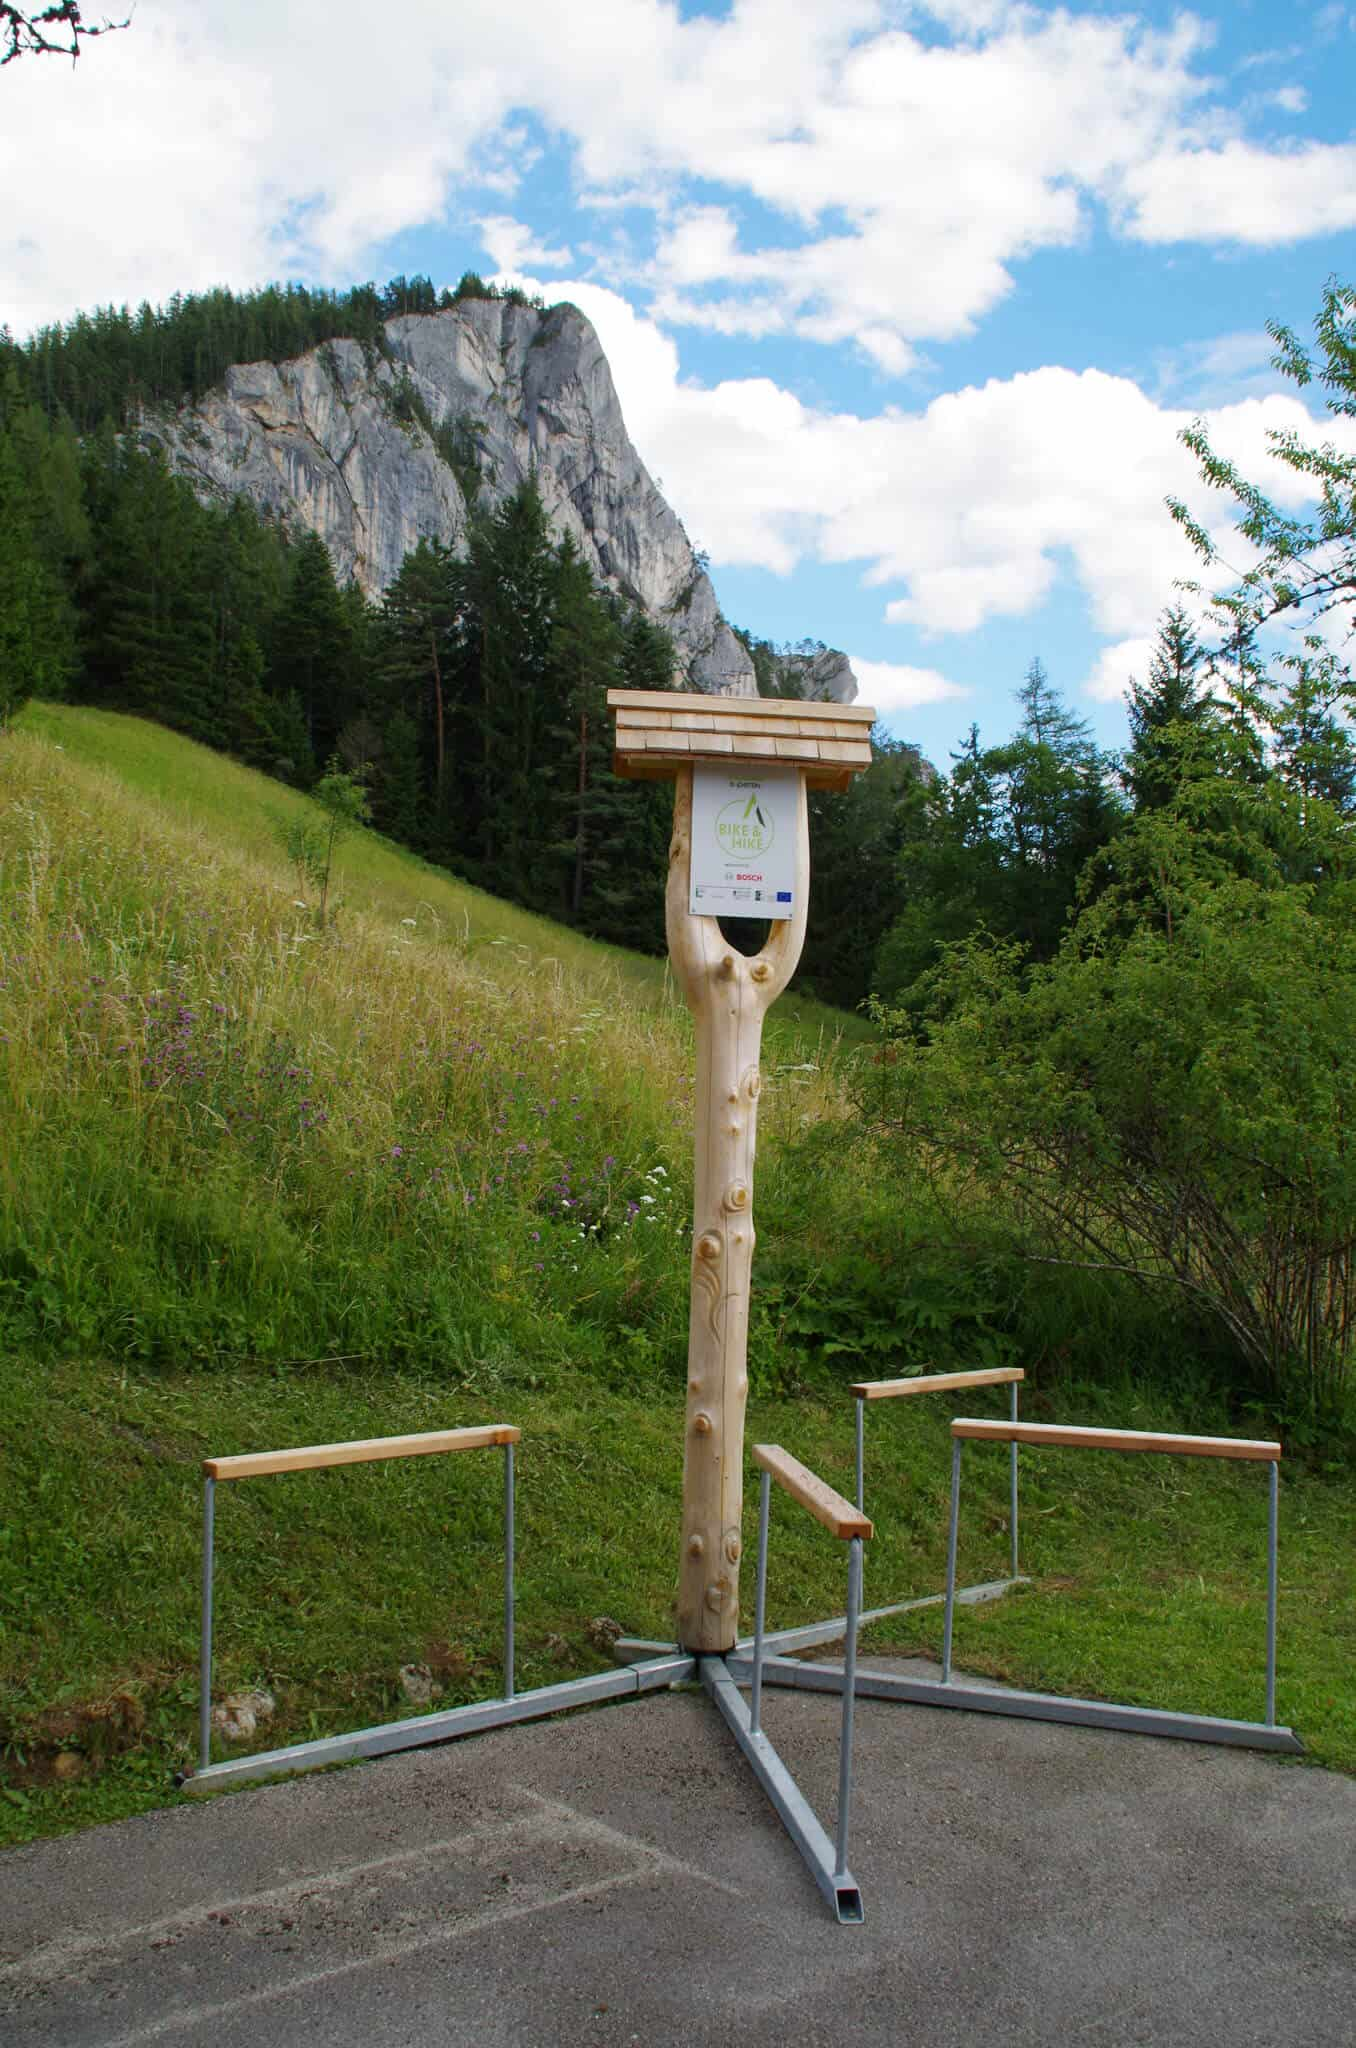 Tour Dachsteinblick Bike and Hike with bicycle battery charging station